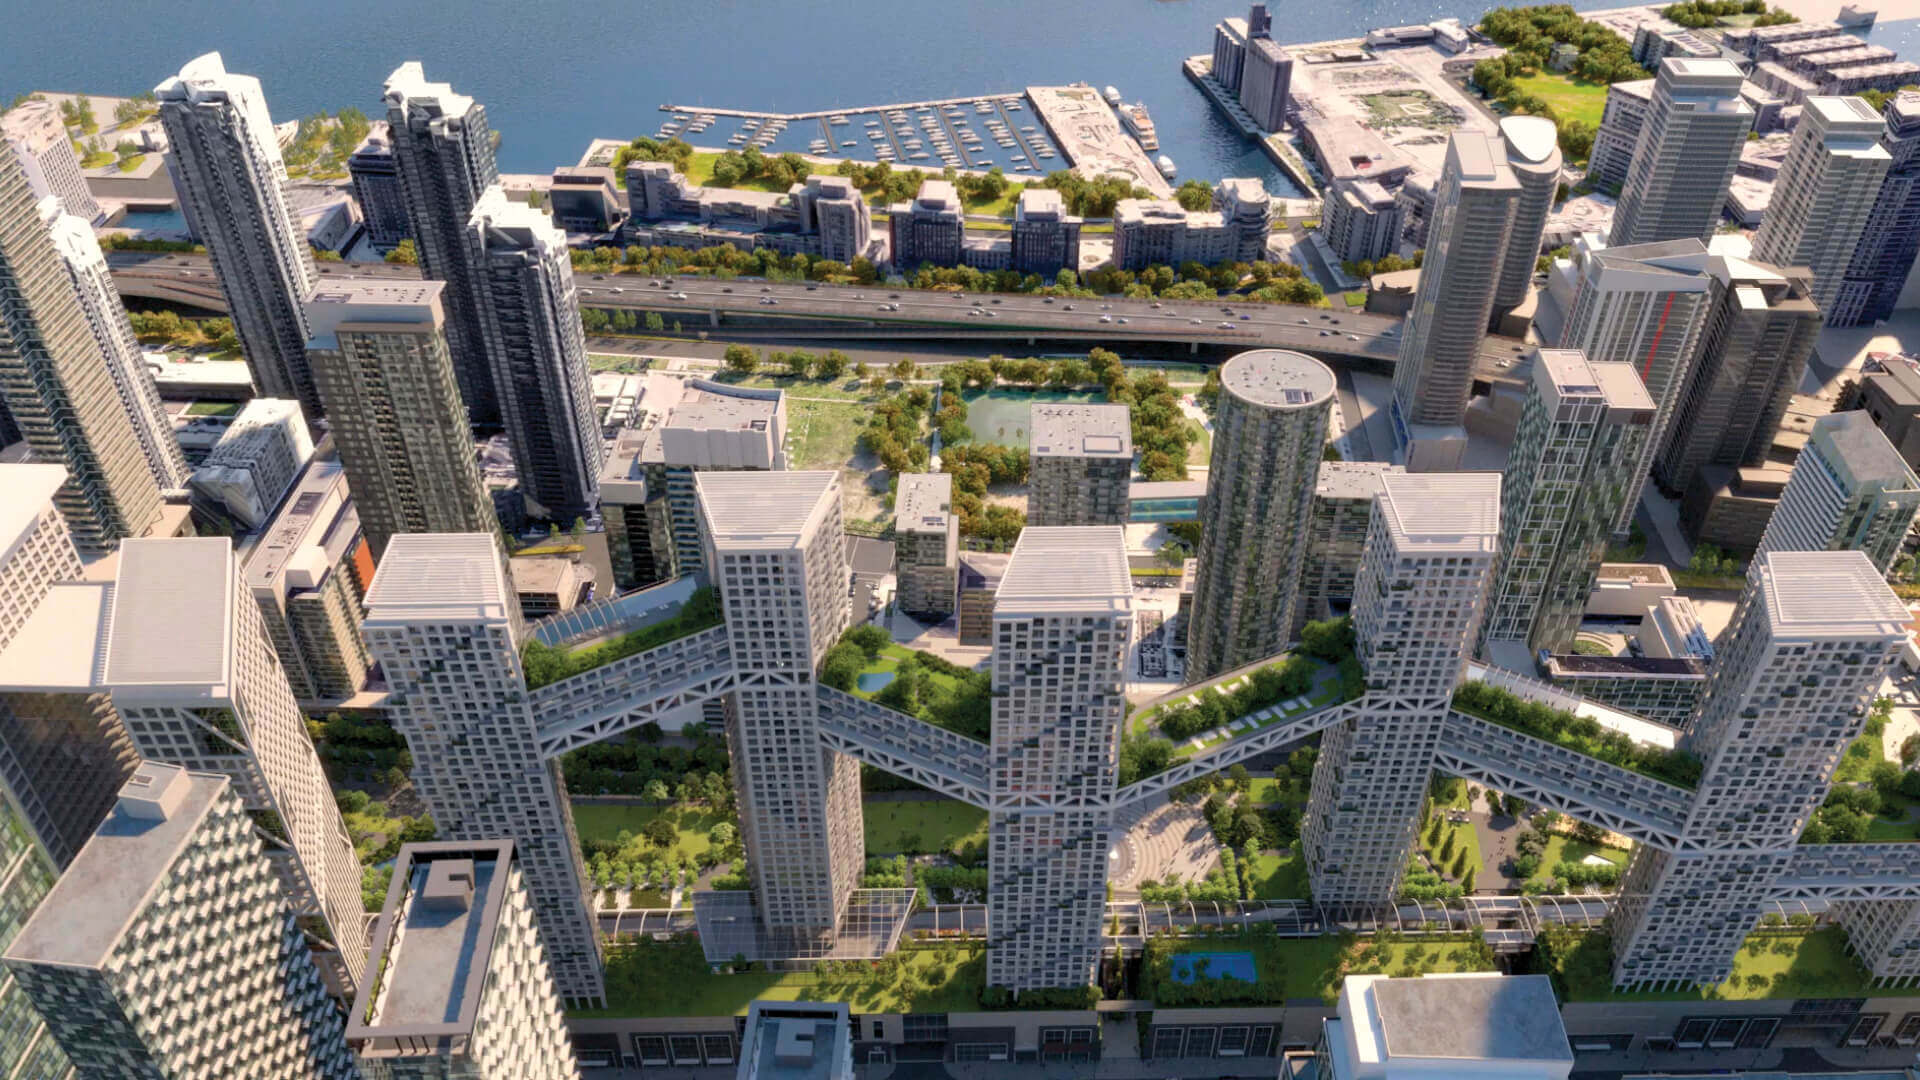 ORCA Toronto is a mixed-used urban development proposal by Safdie Architects in the downtown area |ORCA Toronto | Safdie Architects | STIRworld